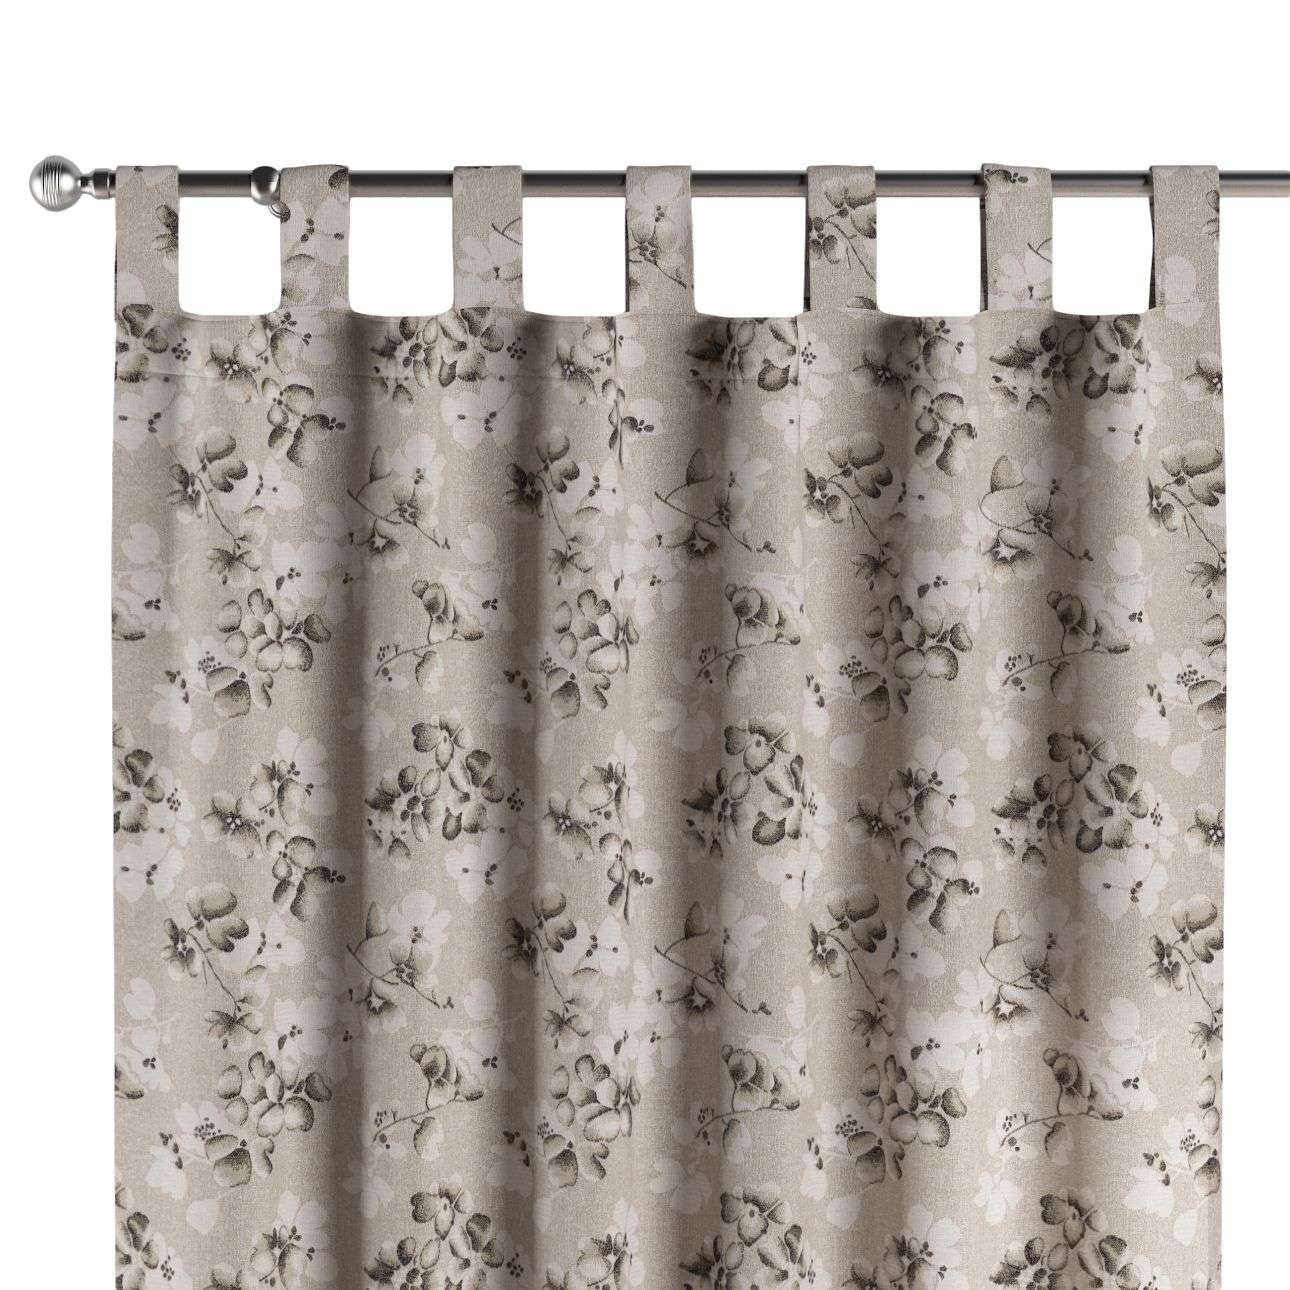 Tab top curtains 130 x 260 cm (51 x 102 inch) in collection Rustica, fabric: 138-14